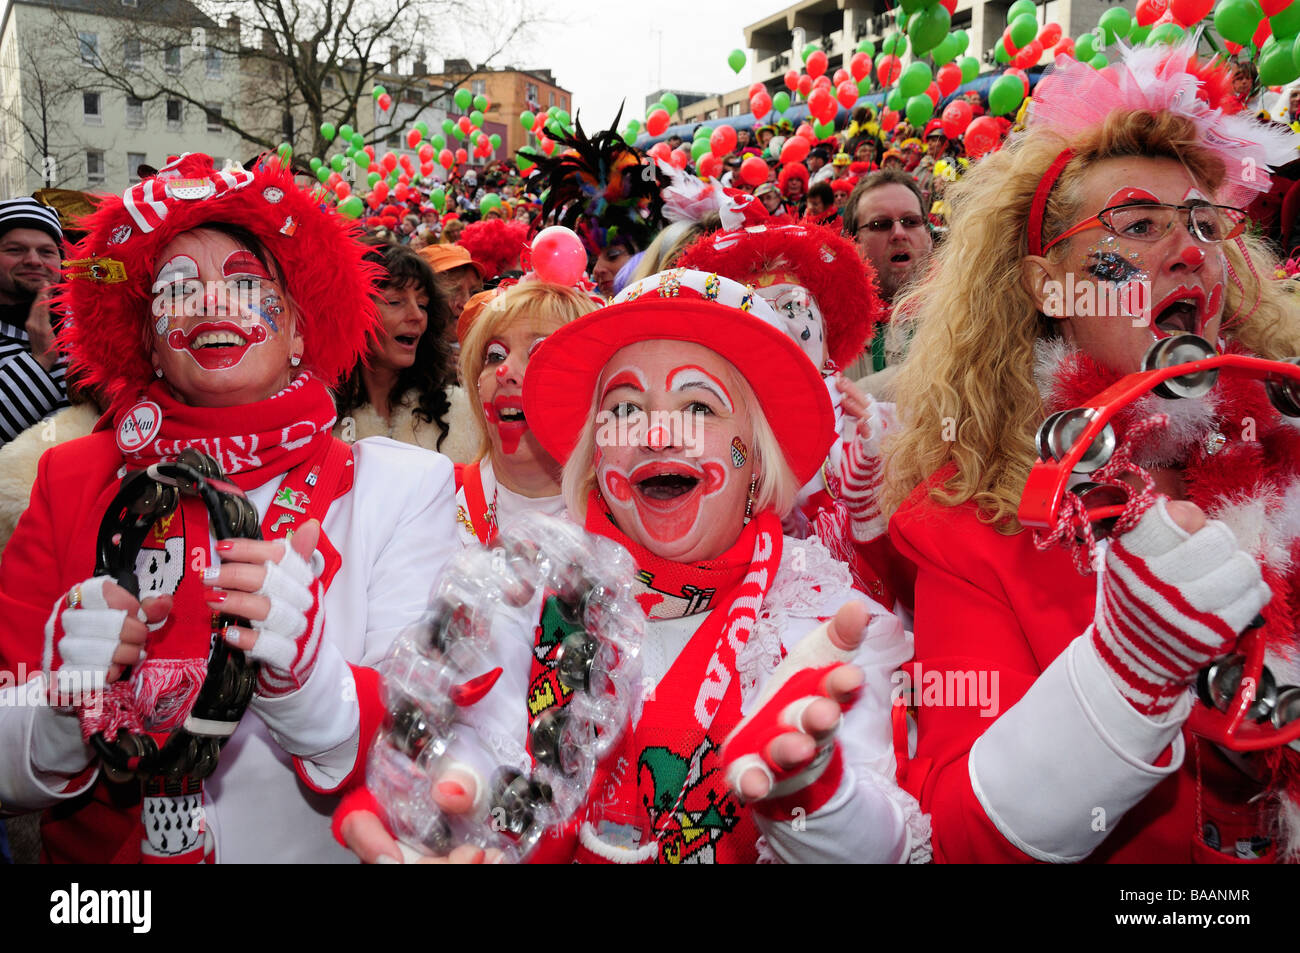 Germans celebrating carnival in Cologne - Stock Image